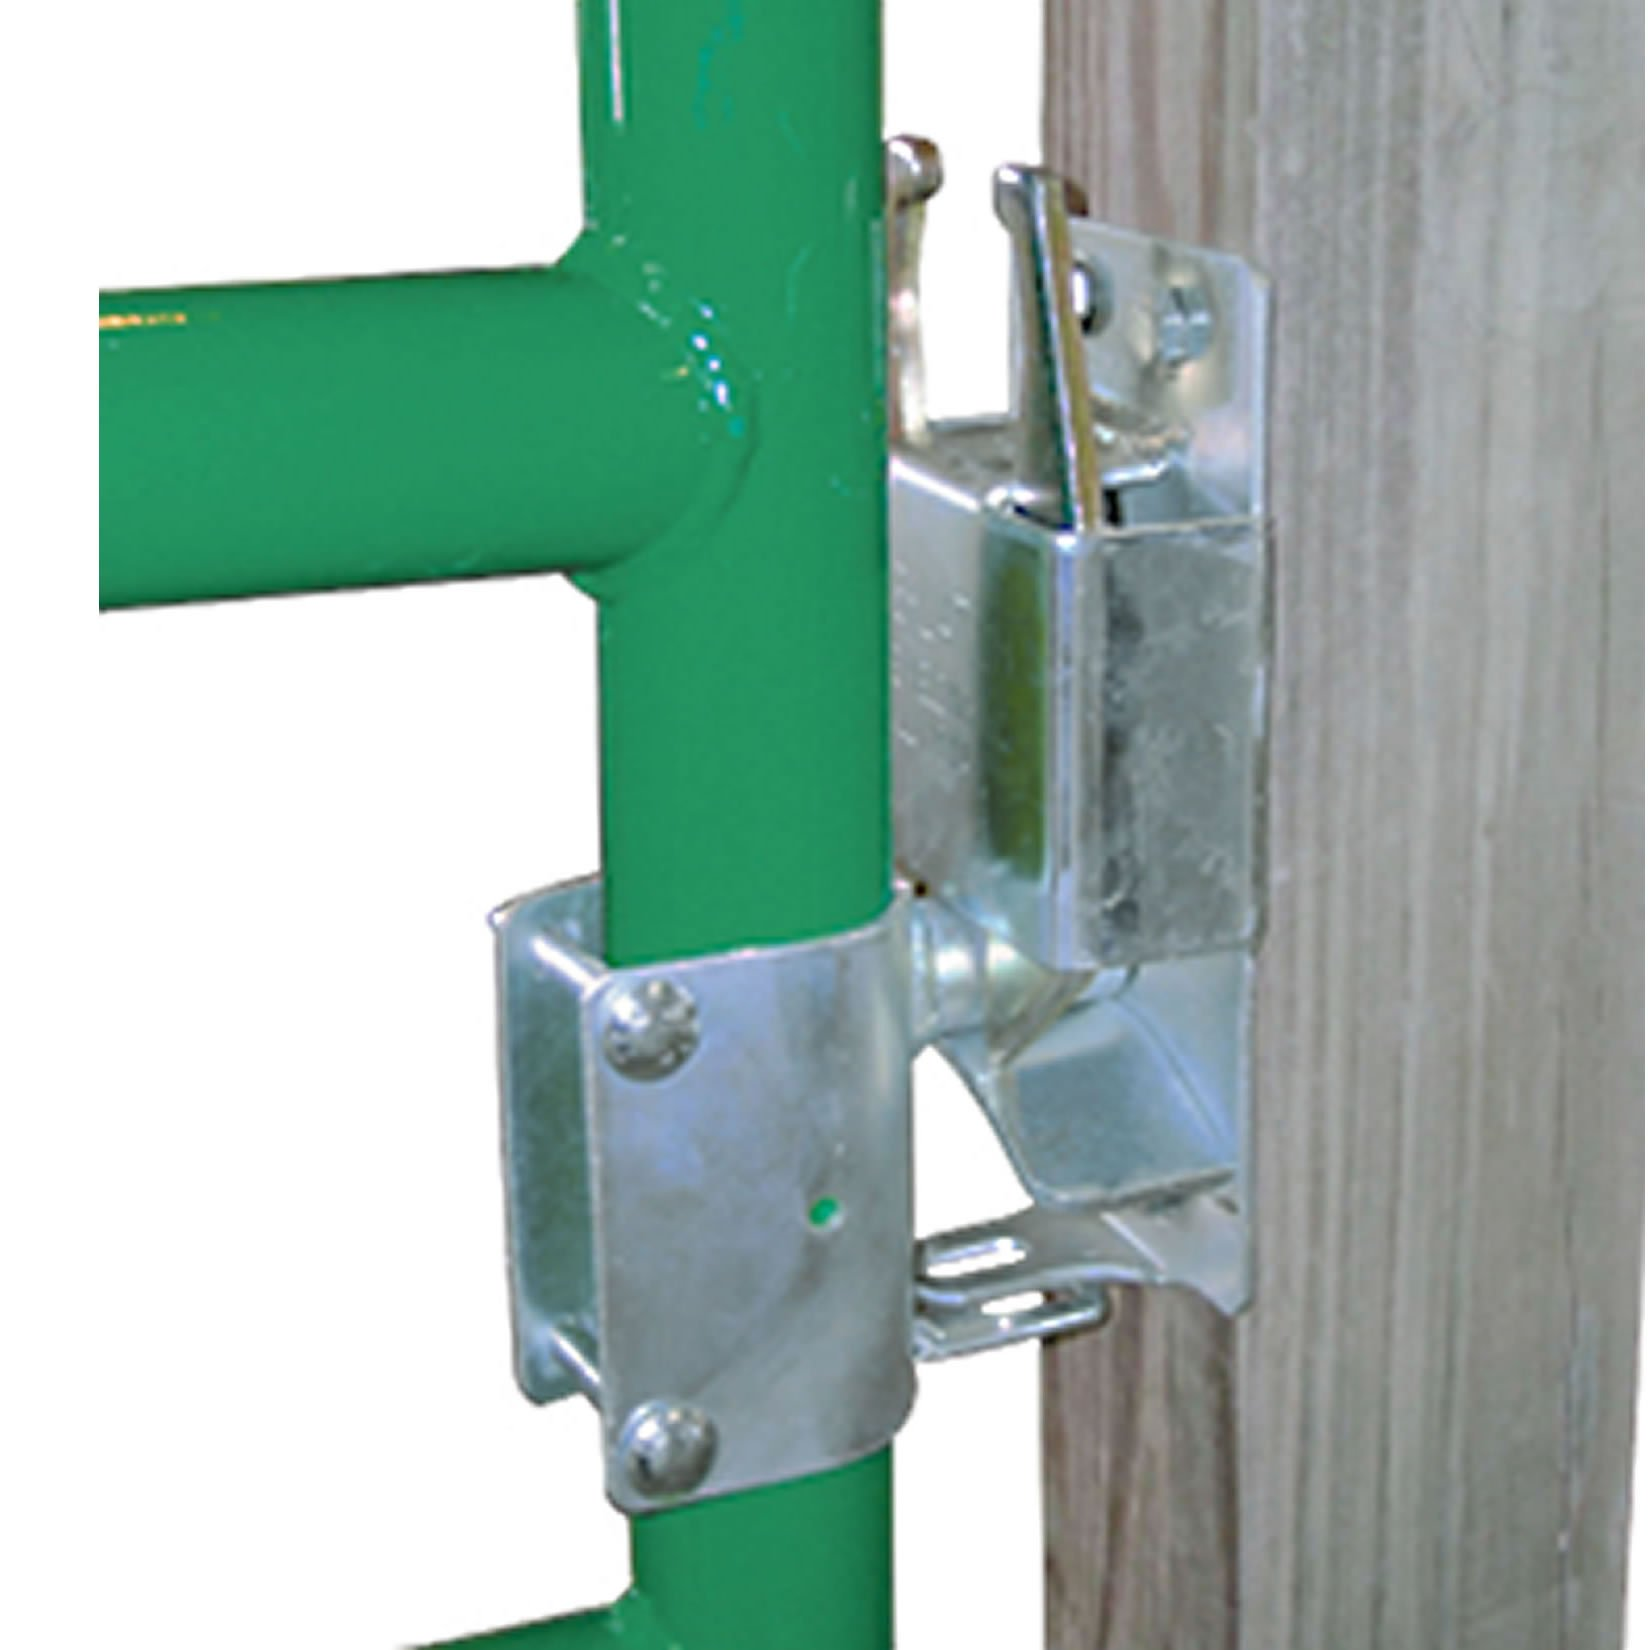 Co-Line Lockable 2-Way Livestock Gate Latch by Co-Line (Image #1)